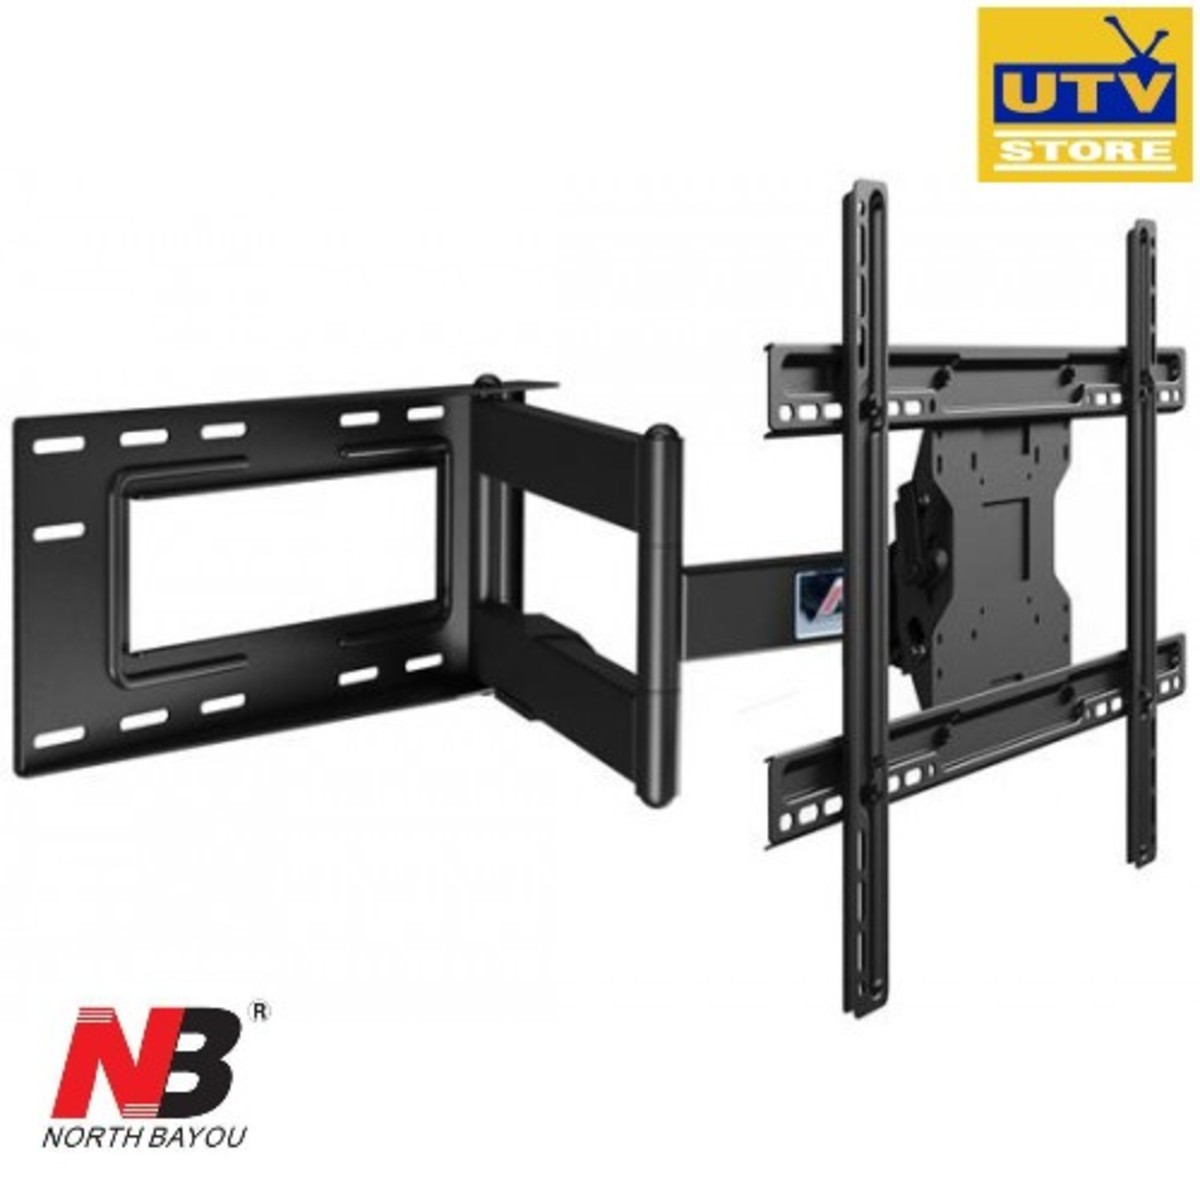 NBSP2 LCD TV cantilever movable wall mount